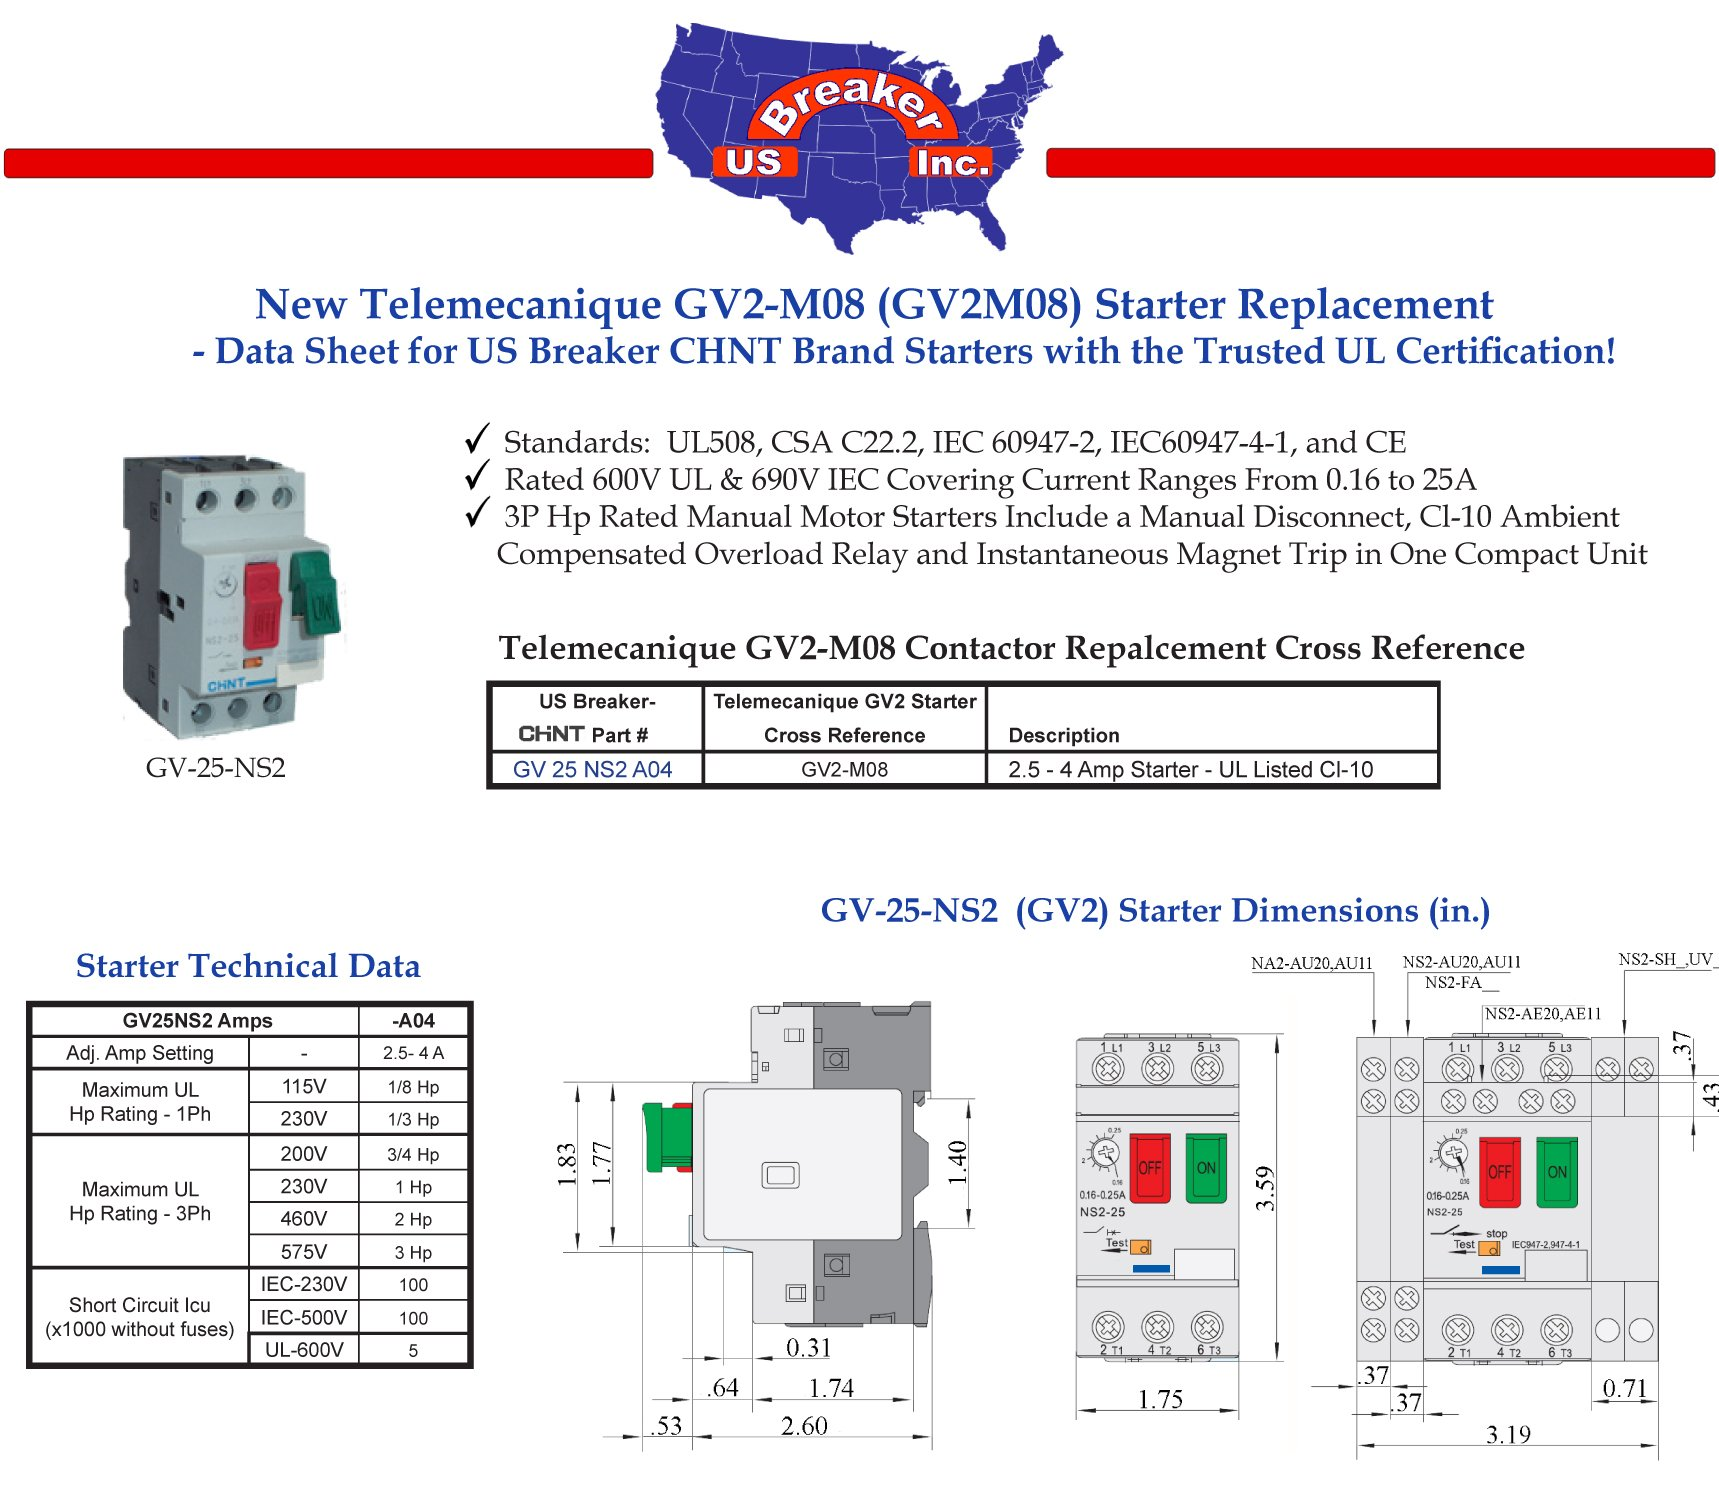 GV2-M08 Telemecanique GV2M08 Motor Starter - New Direct Replacement - UL Certified!